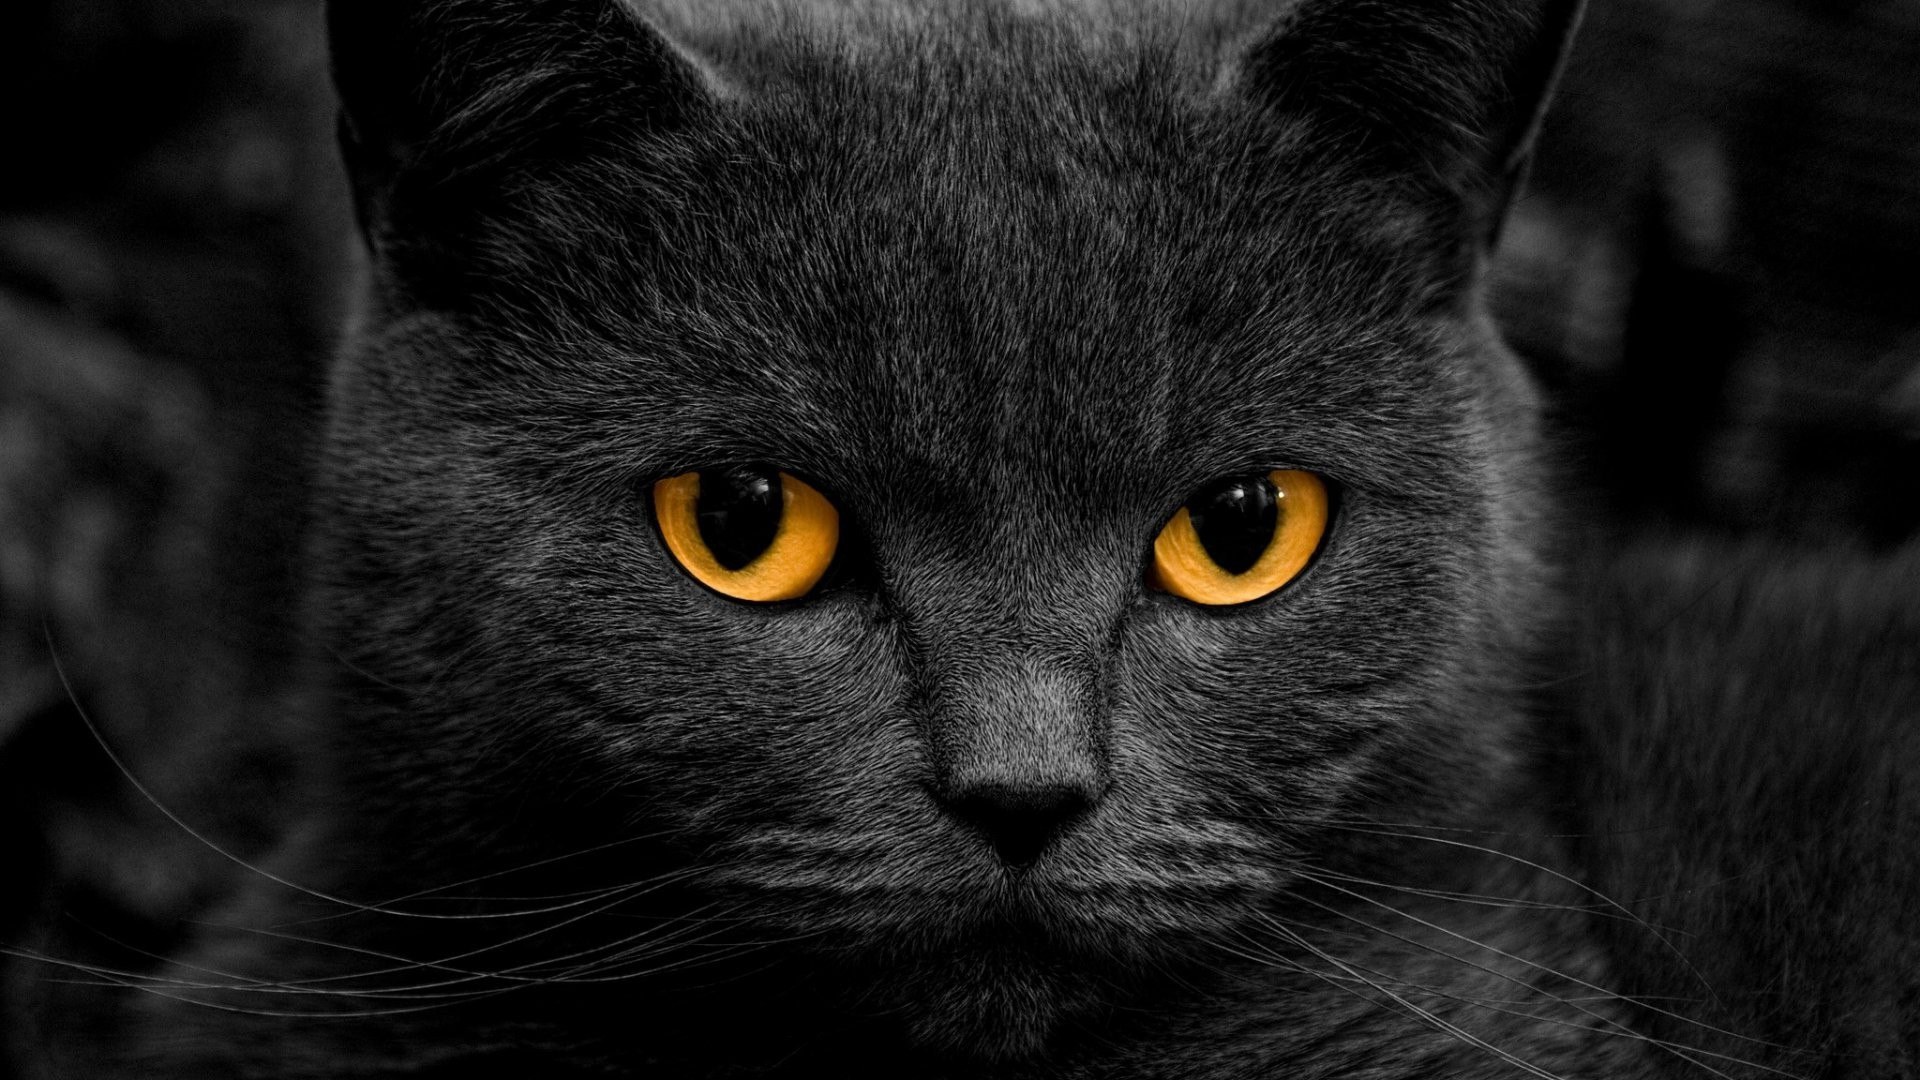 3d Dual Screen Wallpaper Cat Orange Eyes Shadow Wallpapers Hd Desktop And Mobile